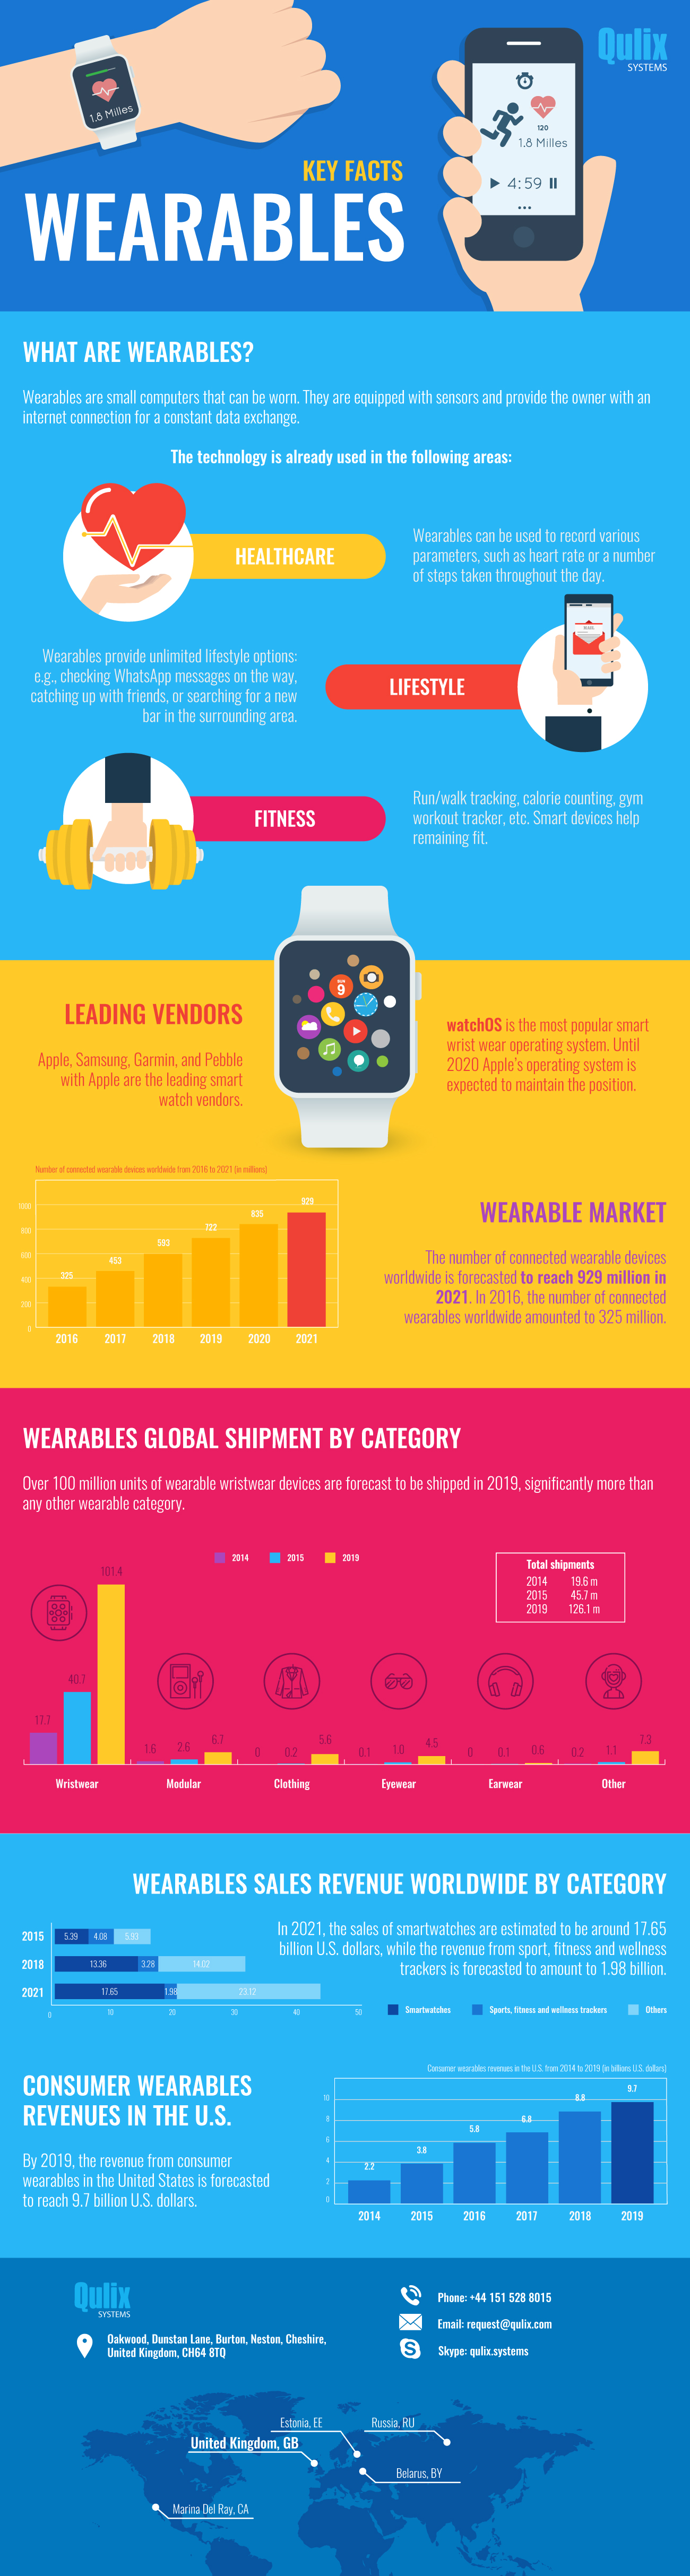 Wearables-Key-Facts (4)